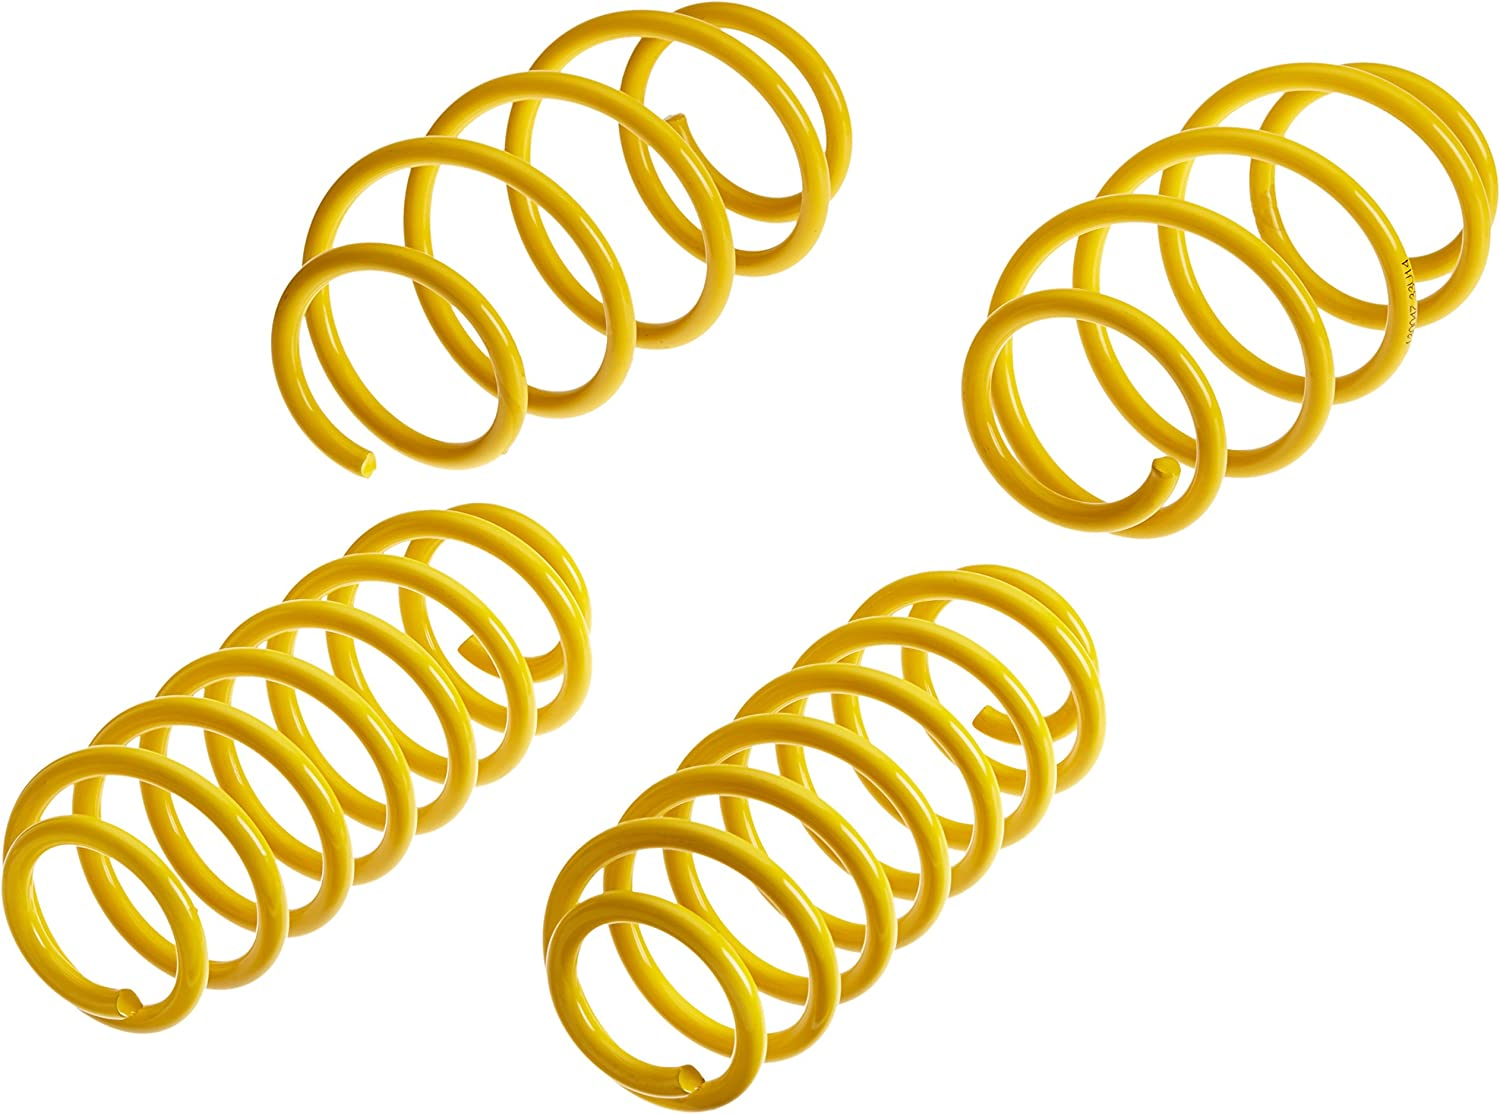 ST Suspensions 65824 Sport-tech Lowering Spring Ford Fiesta Ranking TOP19 for Super beauty product restock quality top